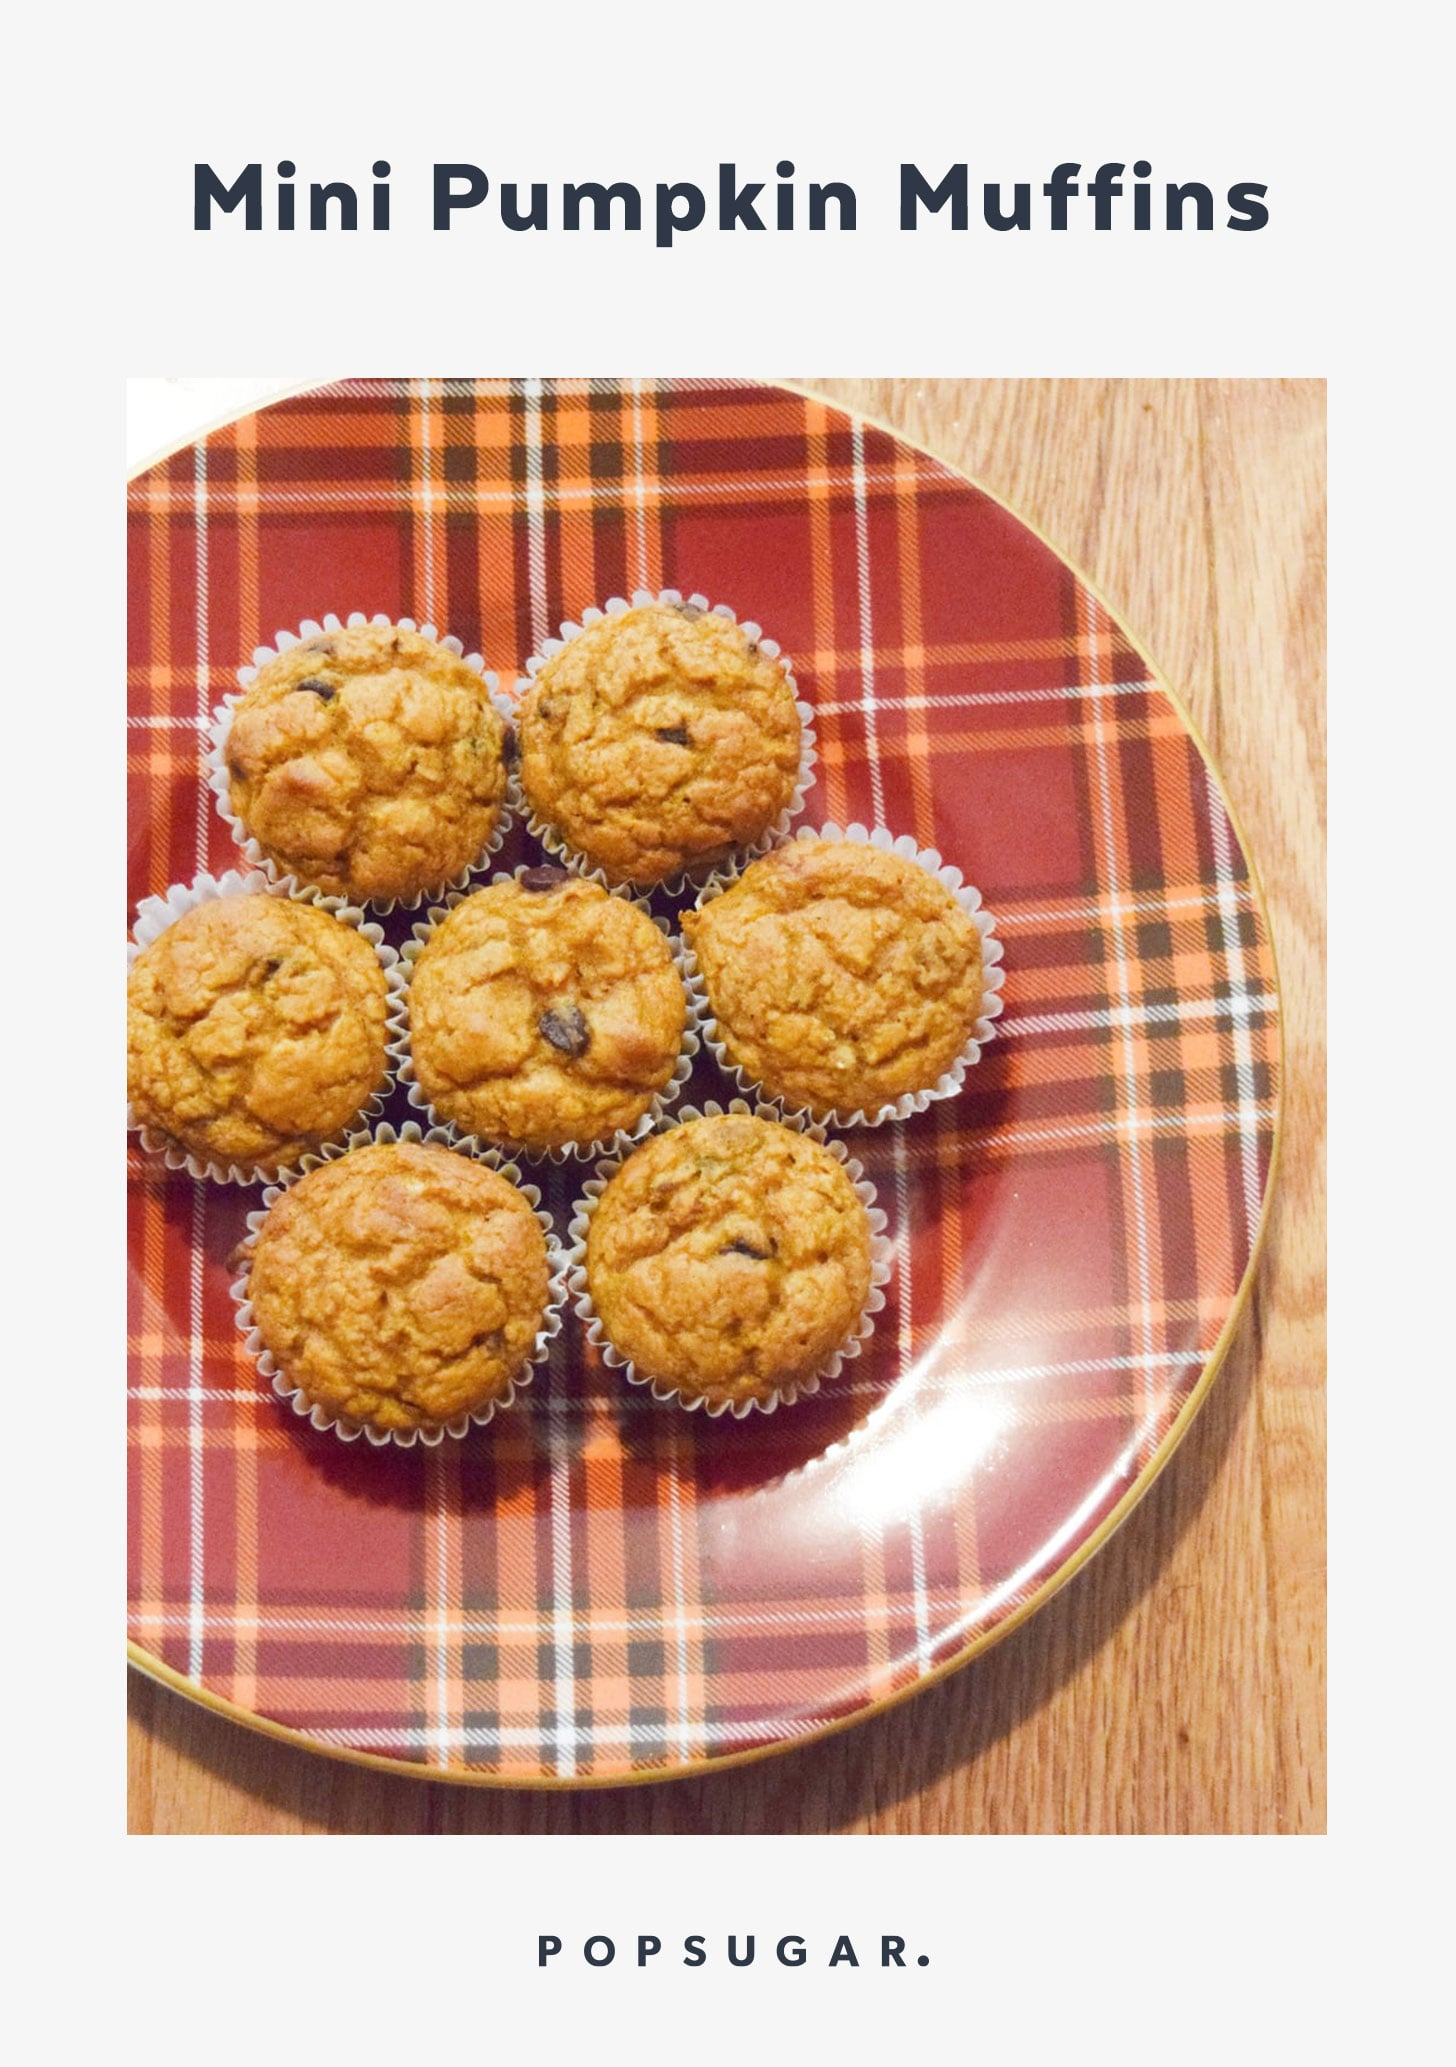 Each of These Pumpkin Muffins Will Set You Back Just 1 SmartPoint on WW